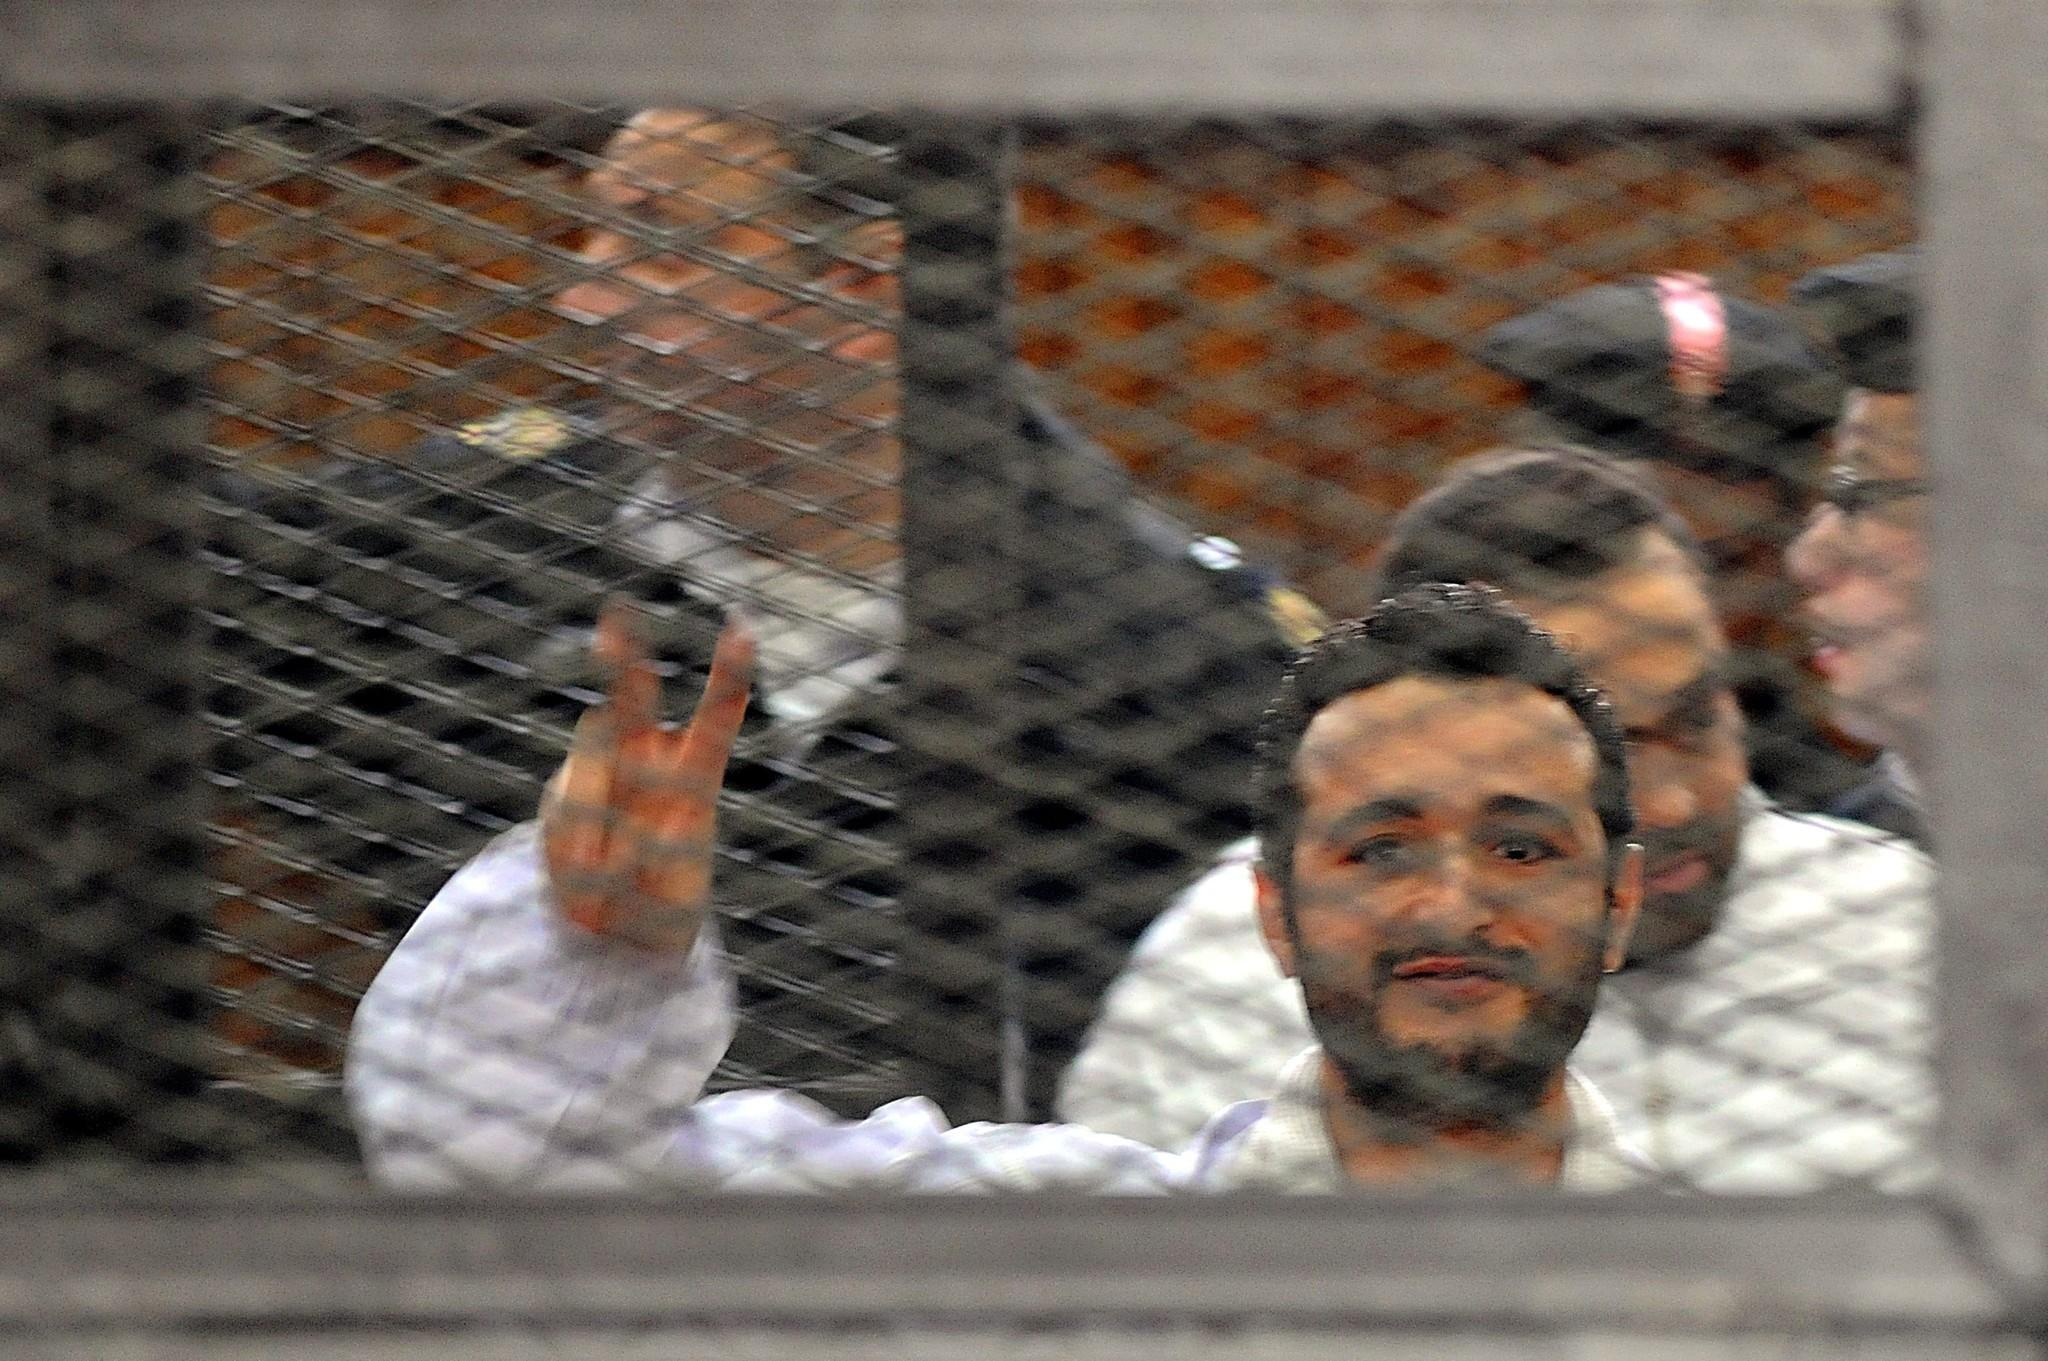 Egyptian activist Ahmed Douma signals to his supporters during his trial in Cairo.